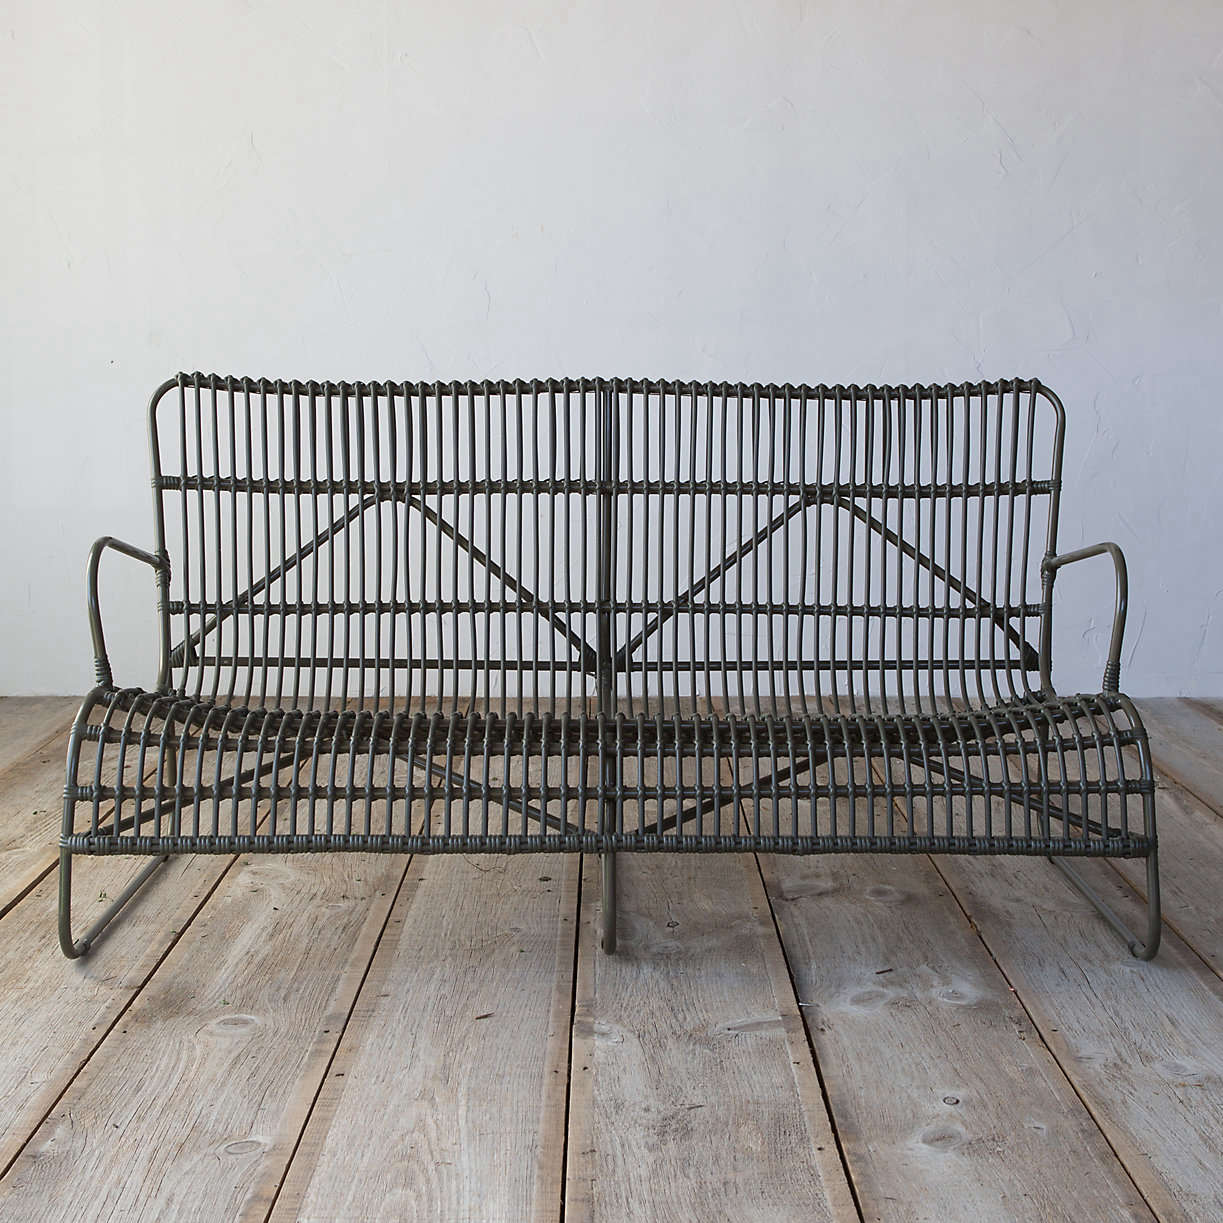 An Open Weave All Weather Wicker Sofa stands up to the weather, withpolyester rattan woven around a powder-coated aluminum frame. It measures 58.\1 inches long; \$898 from Terrain.